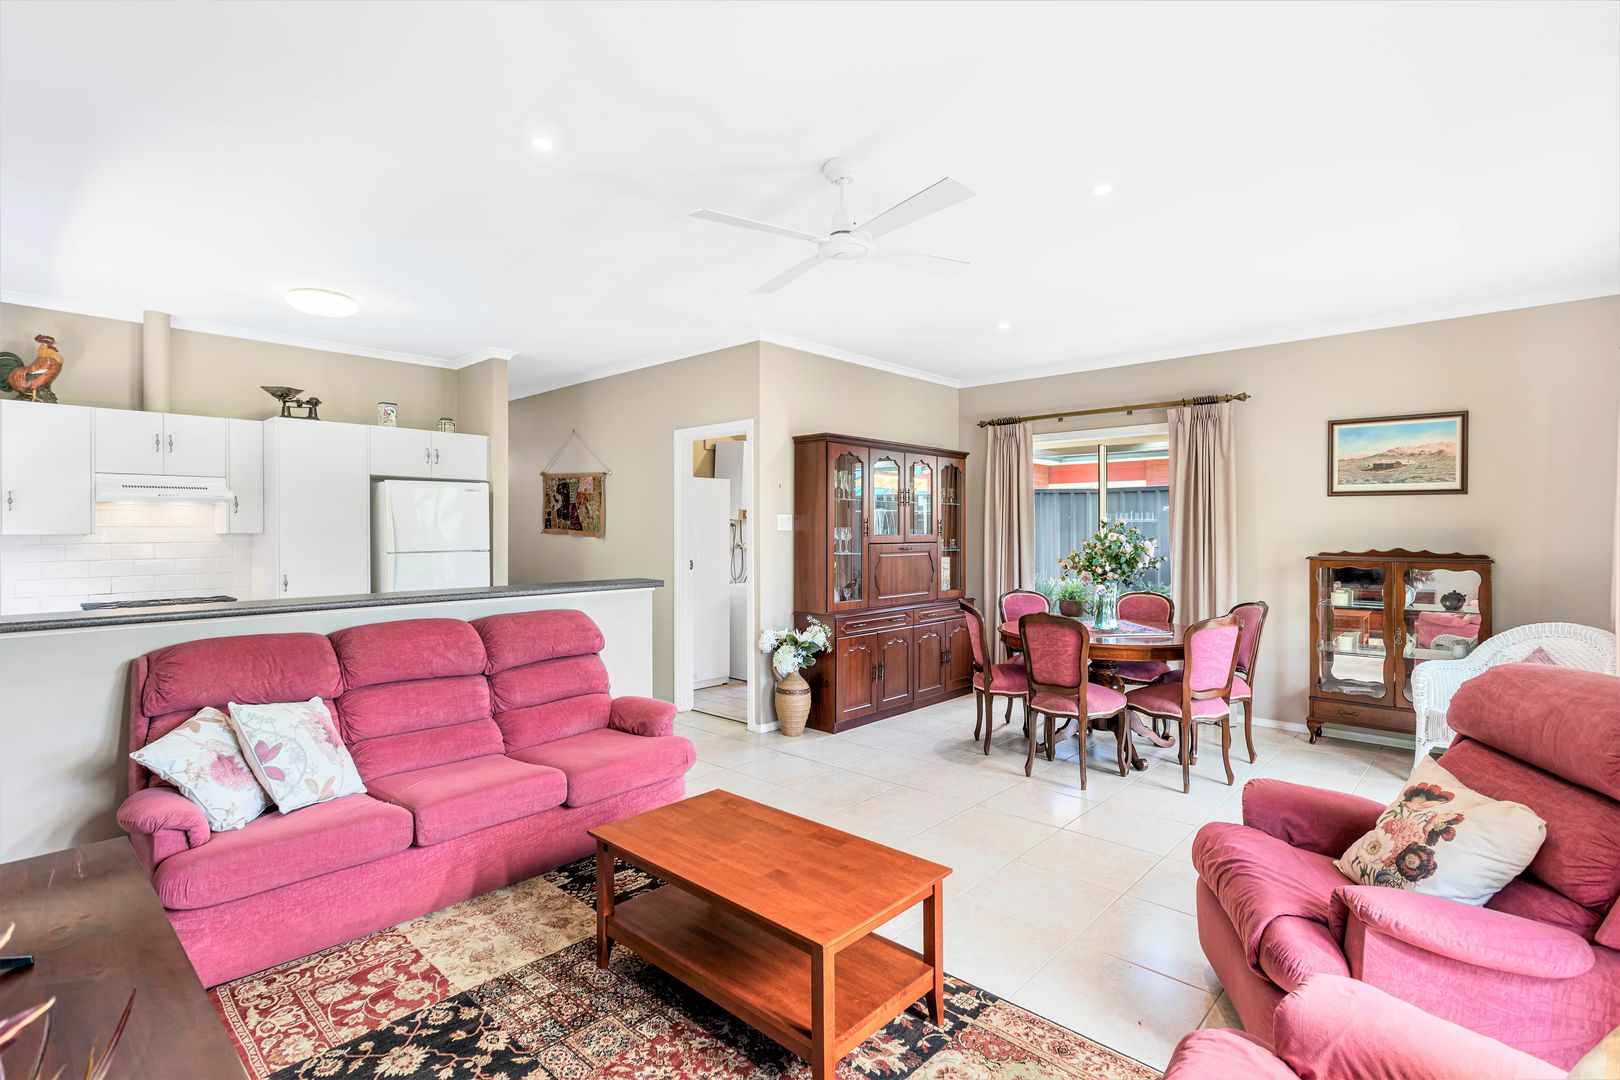 2, 135/2, 135 Cliff St, Glengowrie SA 5044, Image 1